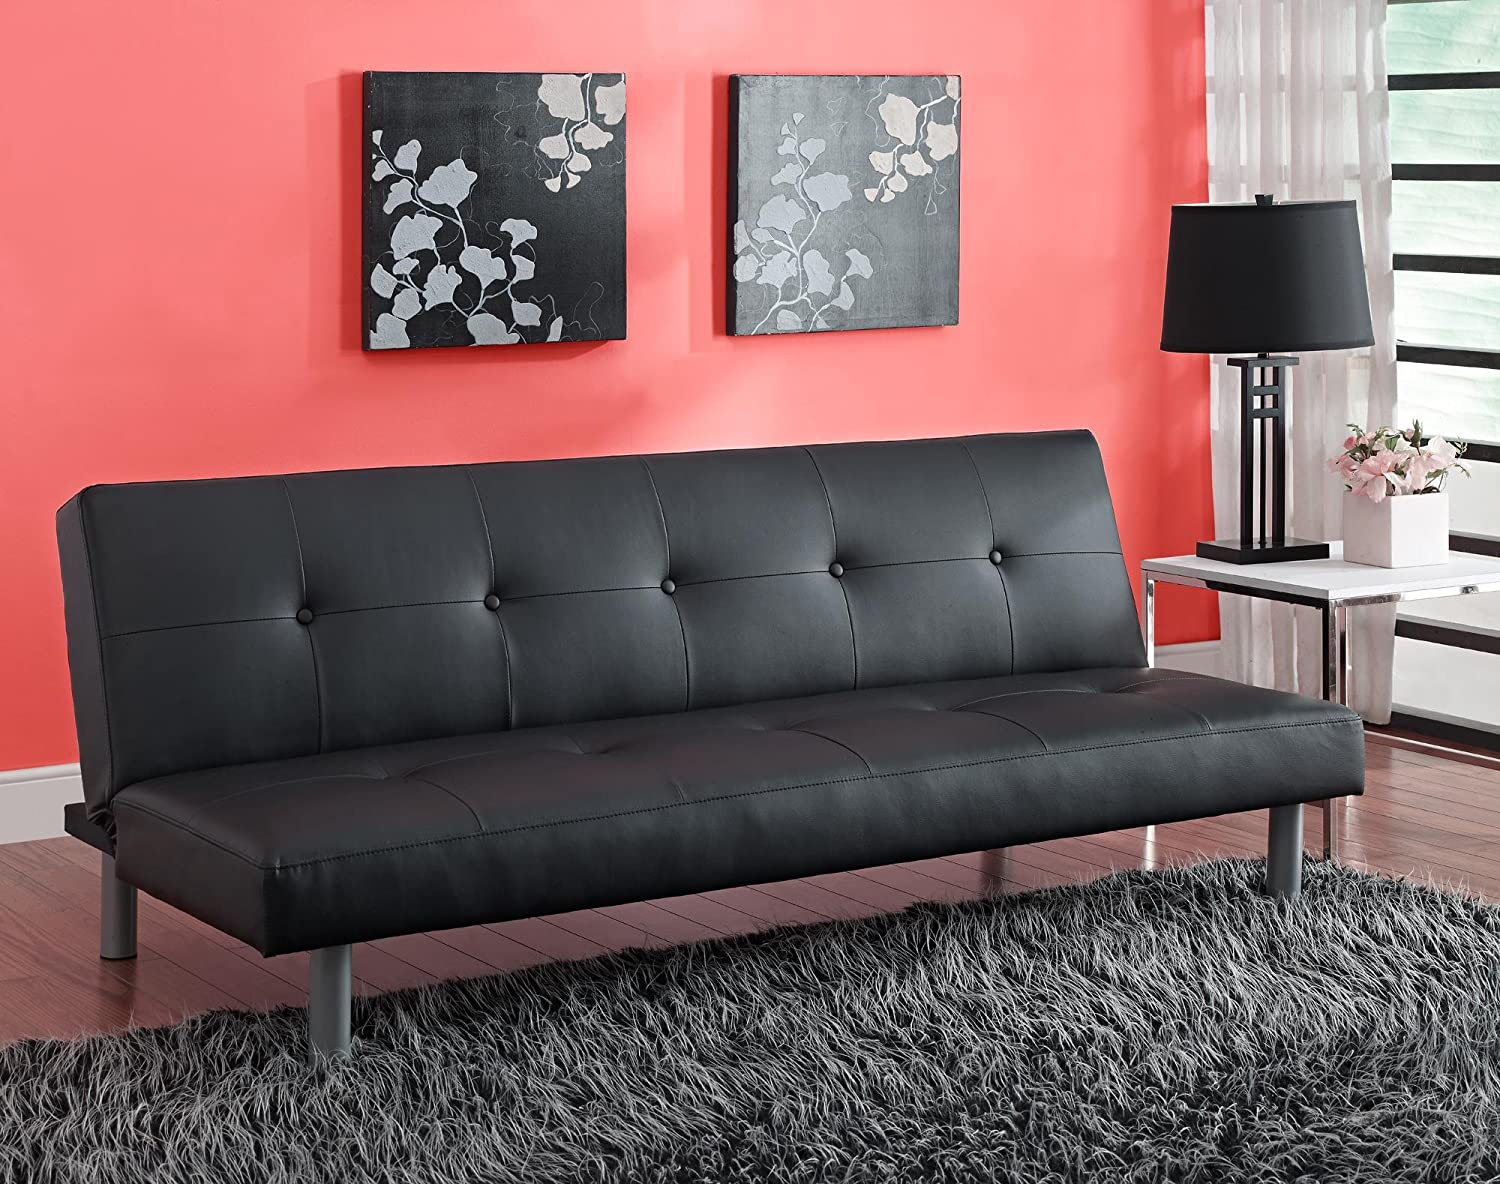 DHP Nola Tufted Futon, Black Dorel Home Furnishings 2051009